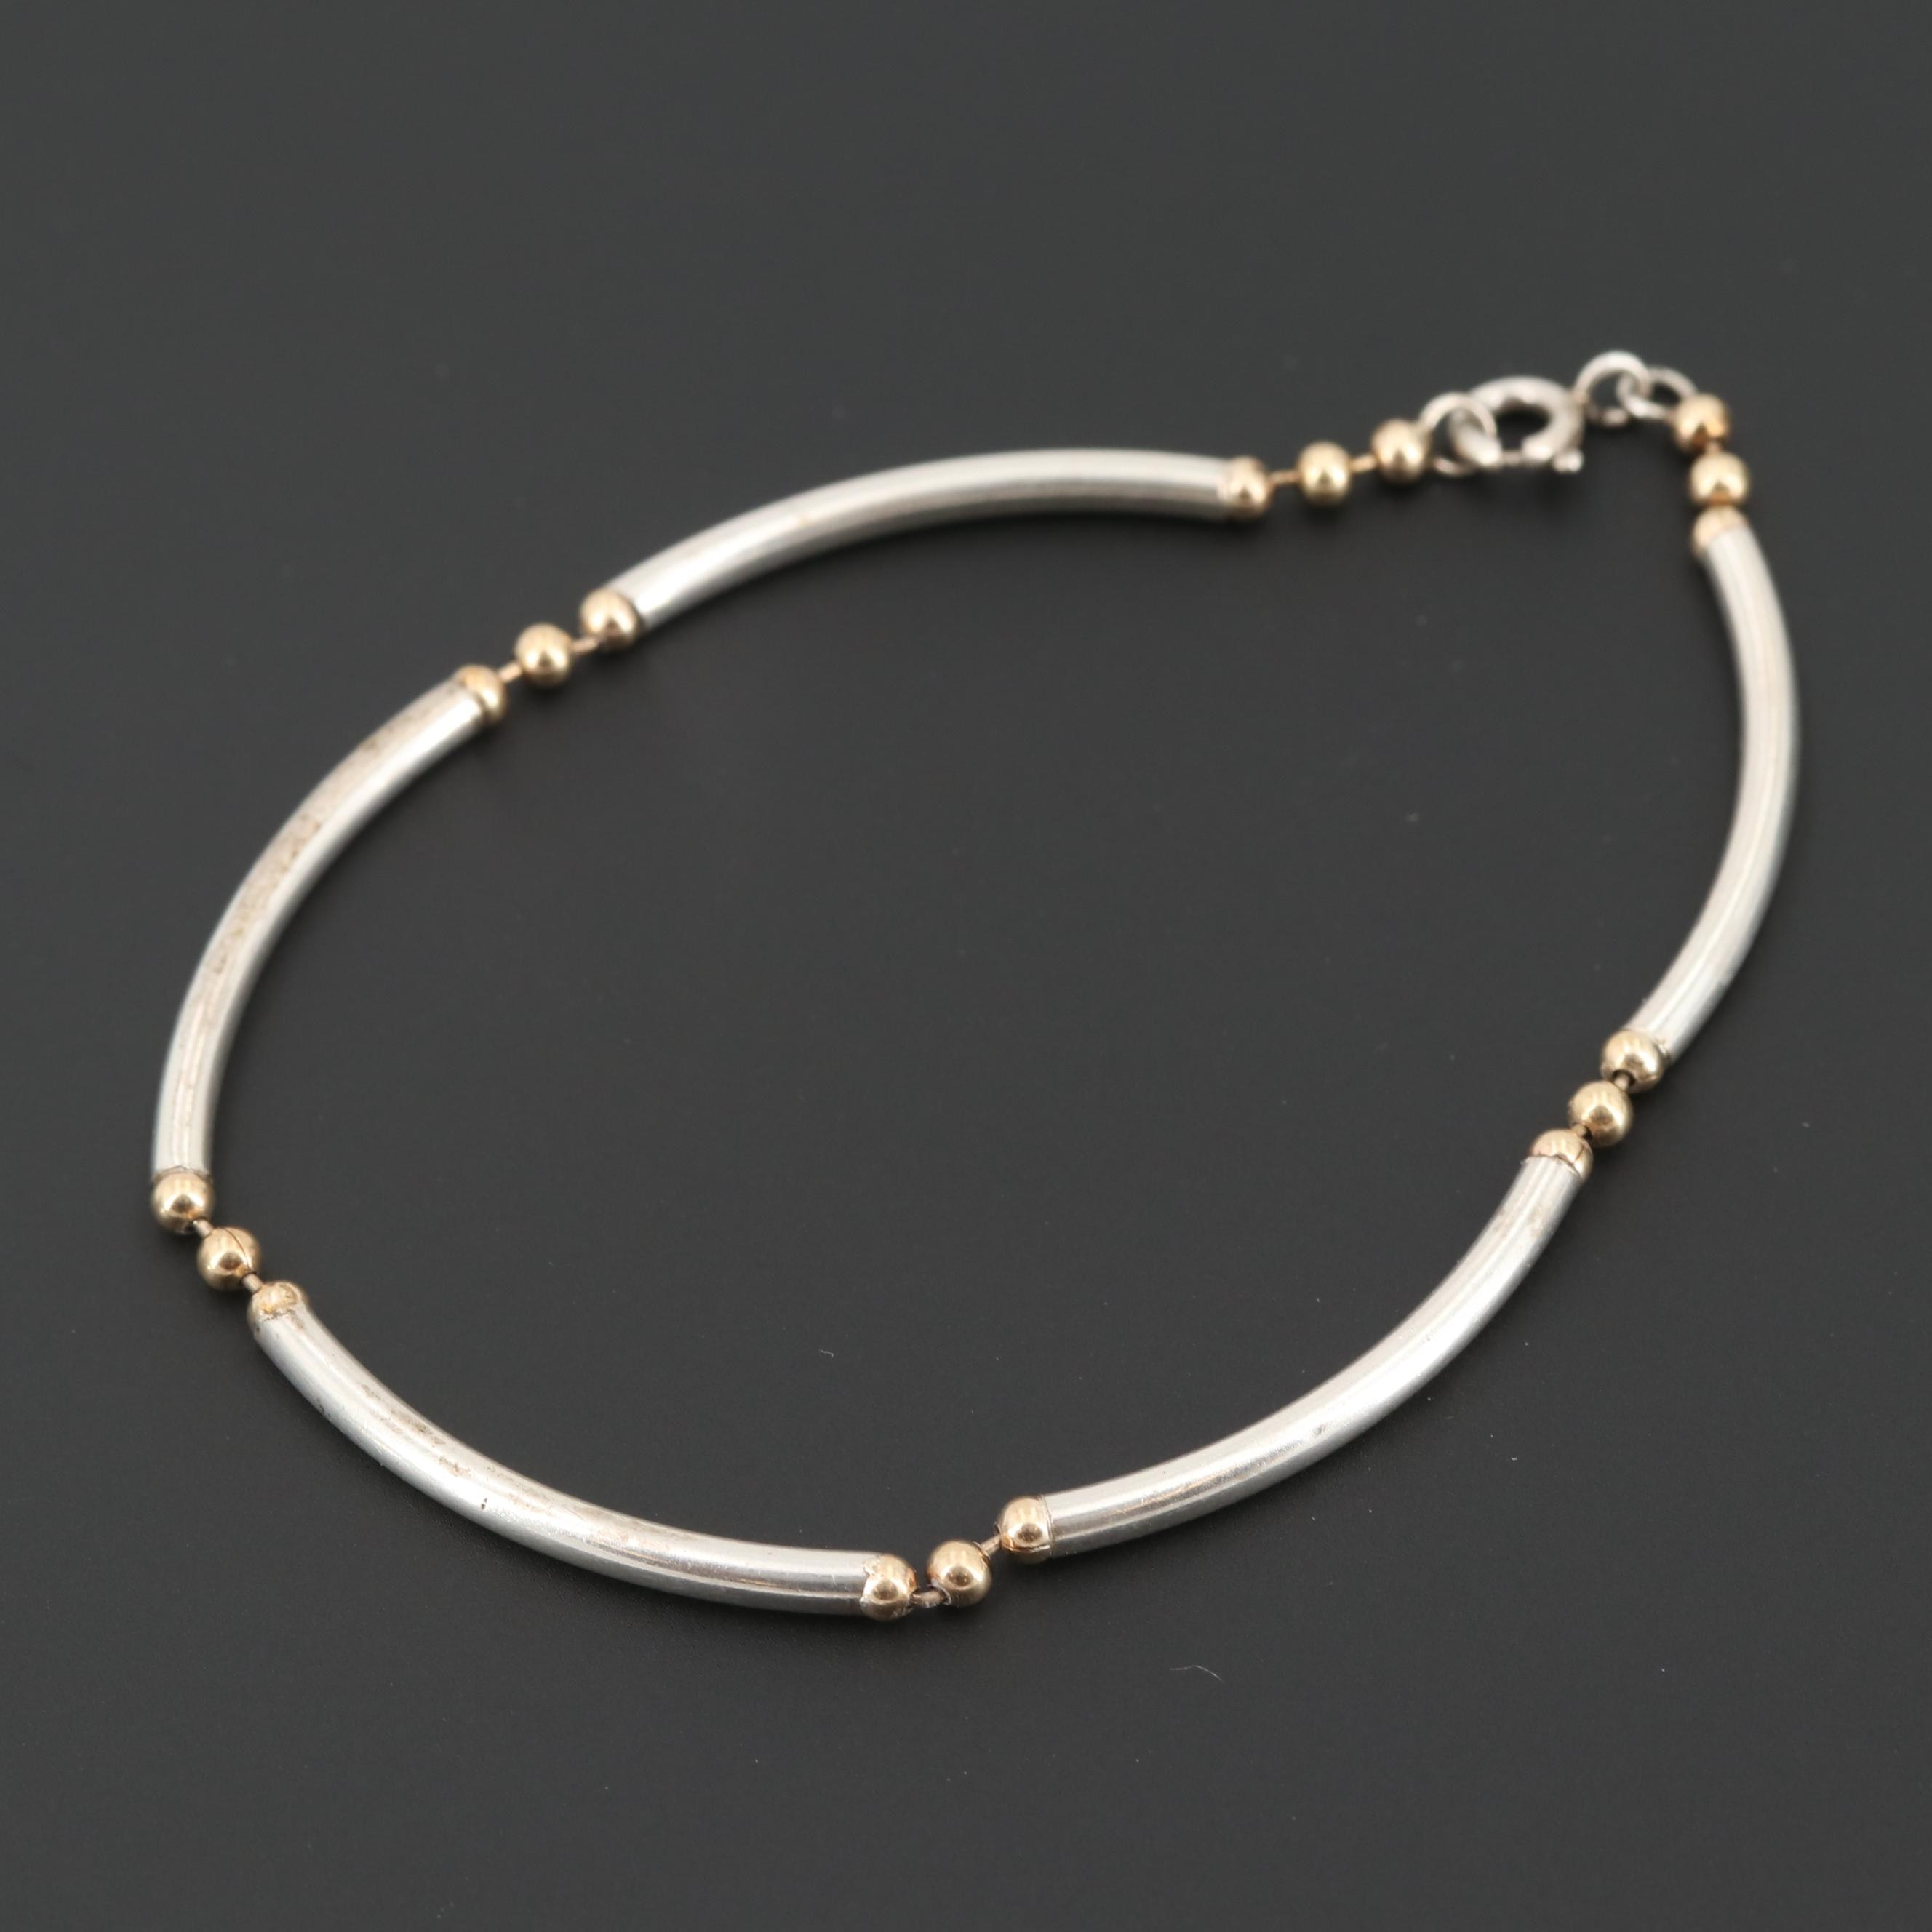 Sterling Silver Bracelet with Gold Wash Accents